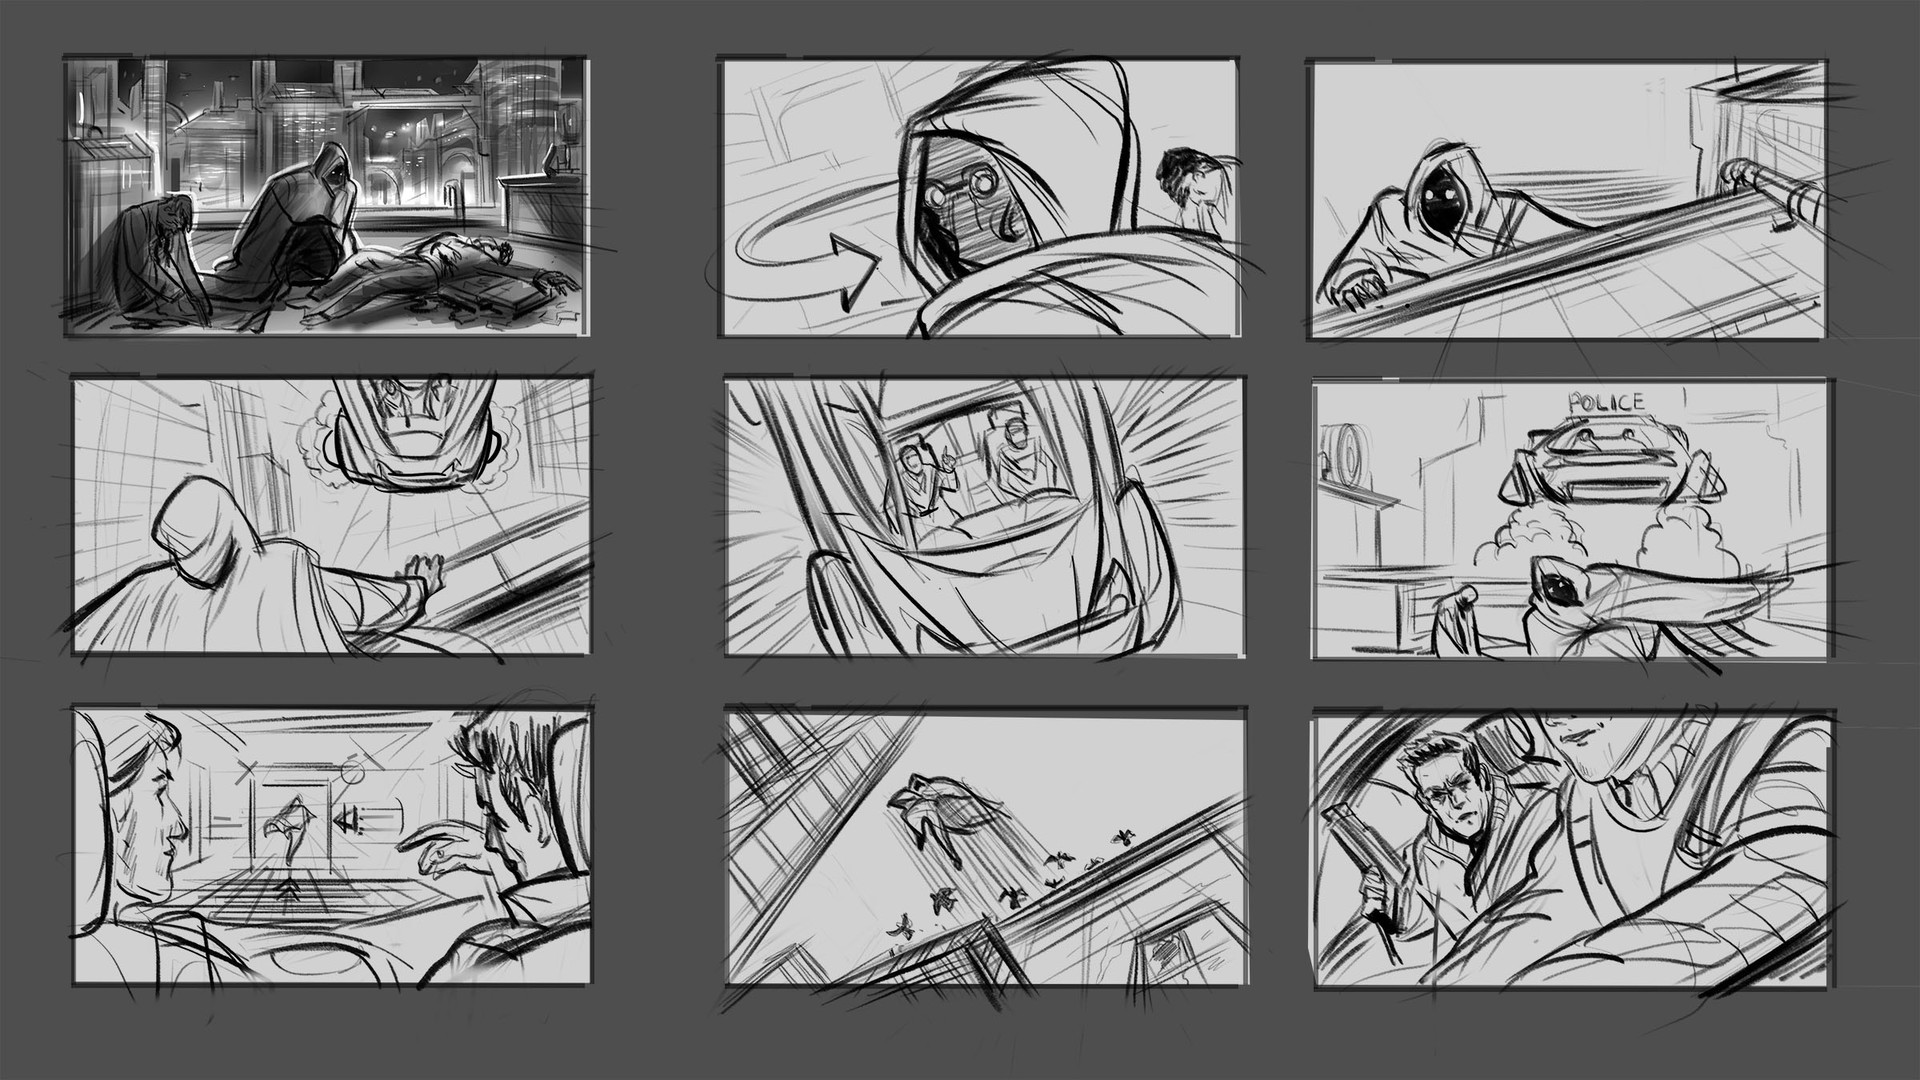 Storyboard frames 1  I decided explore my idea with some quicks boards.